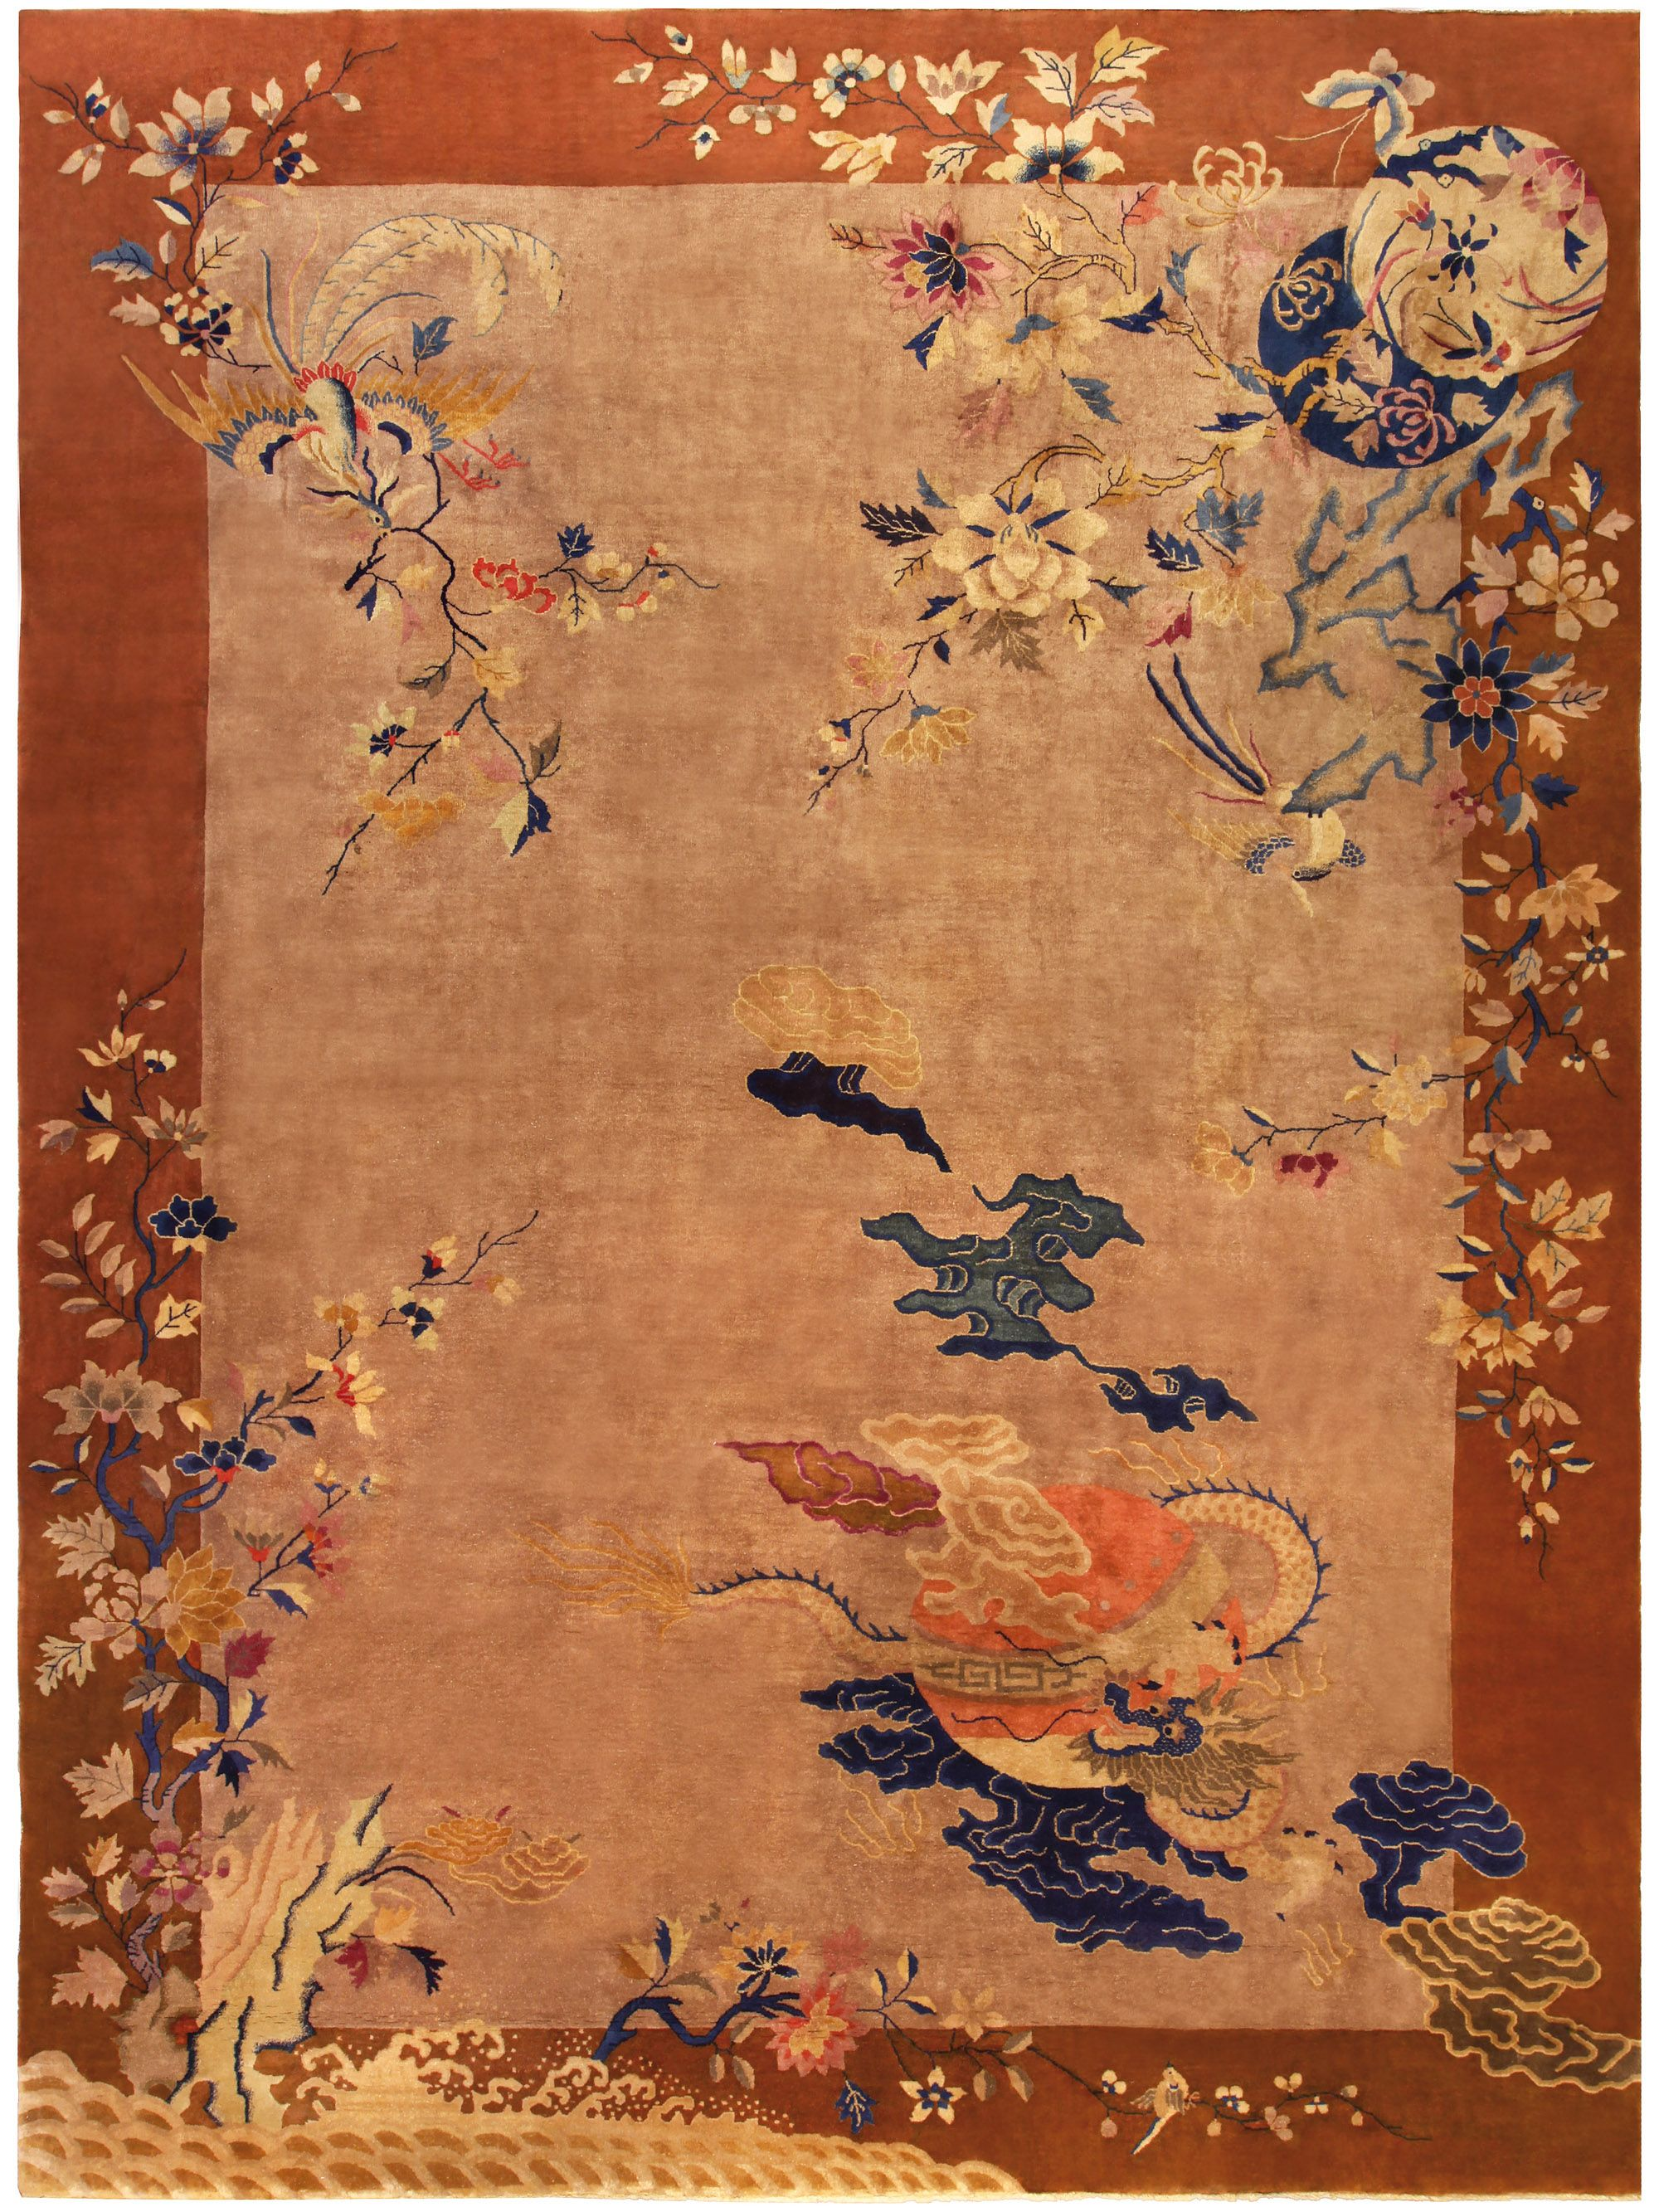 A Chinese Deco Rug BB5193   By Doris Leslie Blau. This Art Deco Rug From